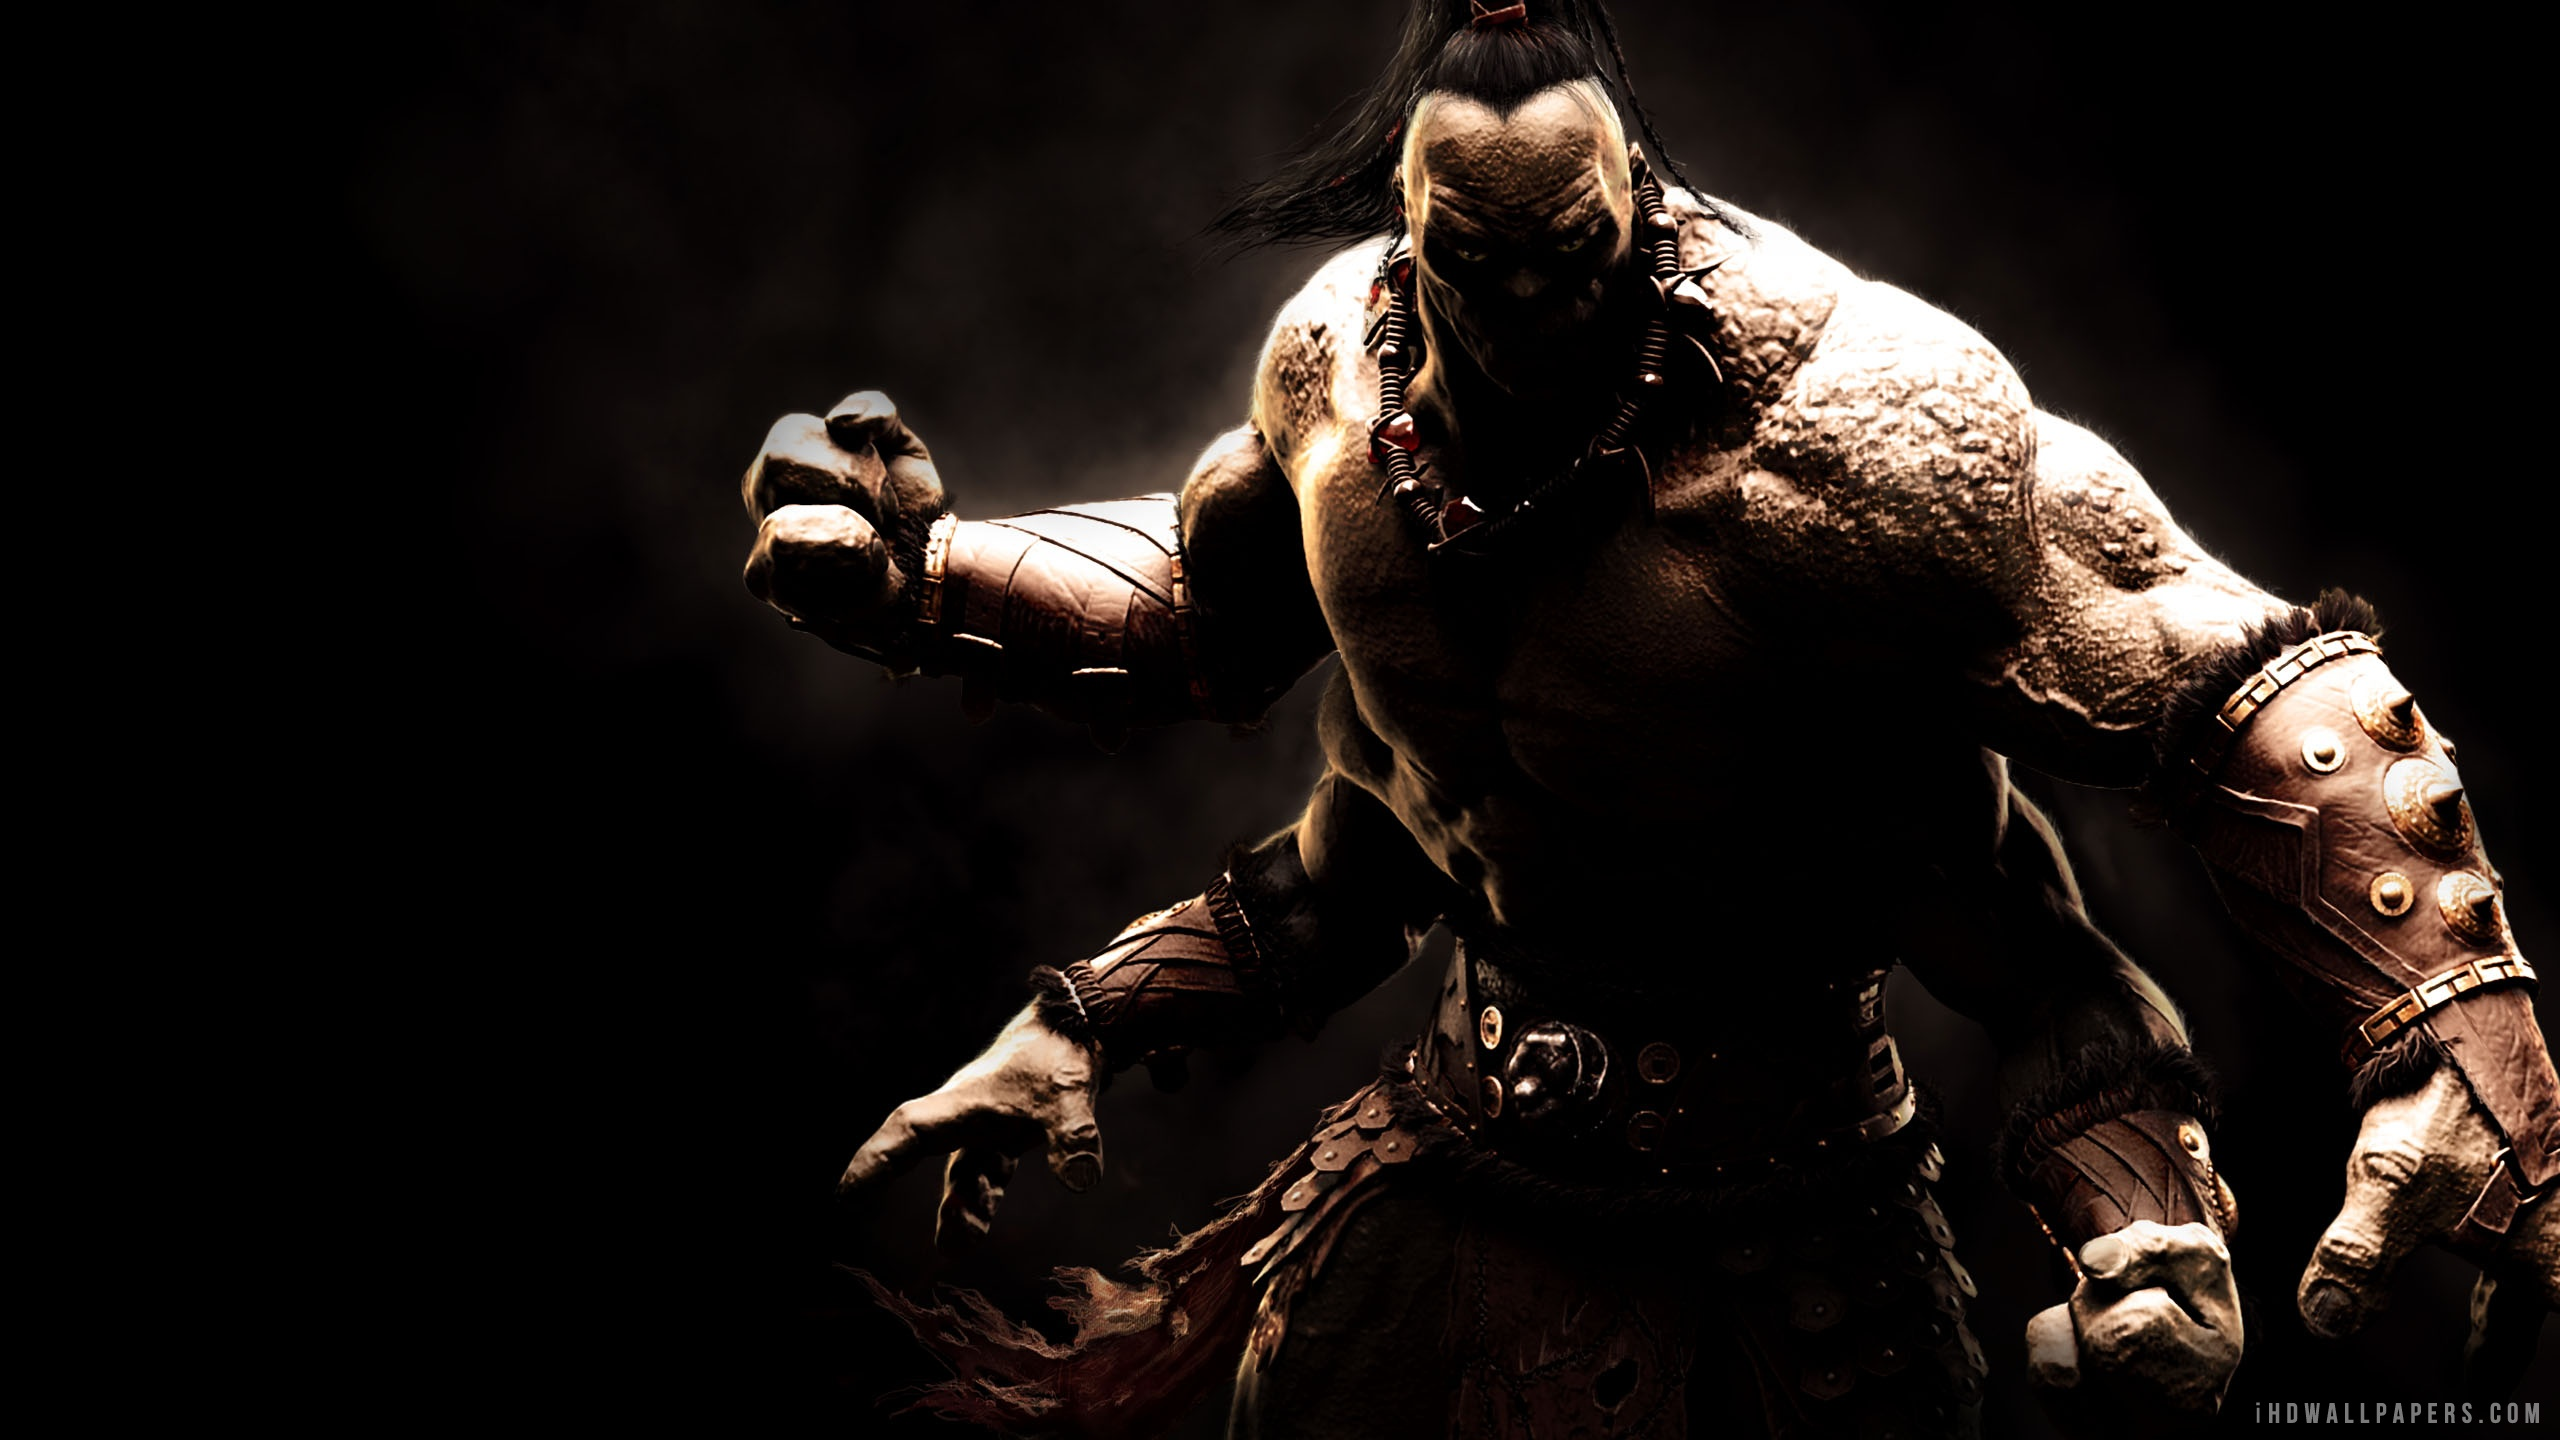 Goro in Mortal Kombat X HD Wallpaper   iHD Wallpapers 2560x1440